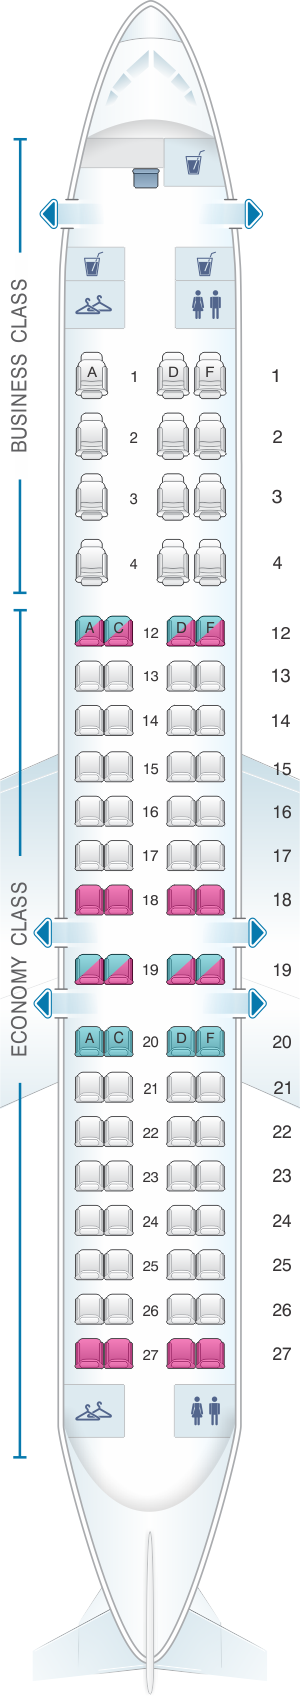 Seat map for Air Canada Bombardier CRJ900